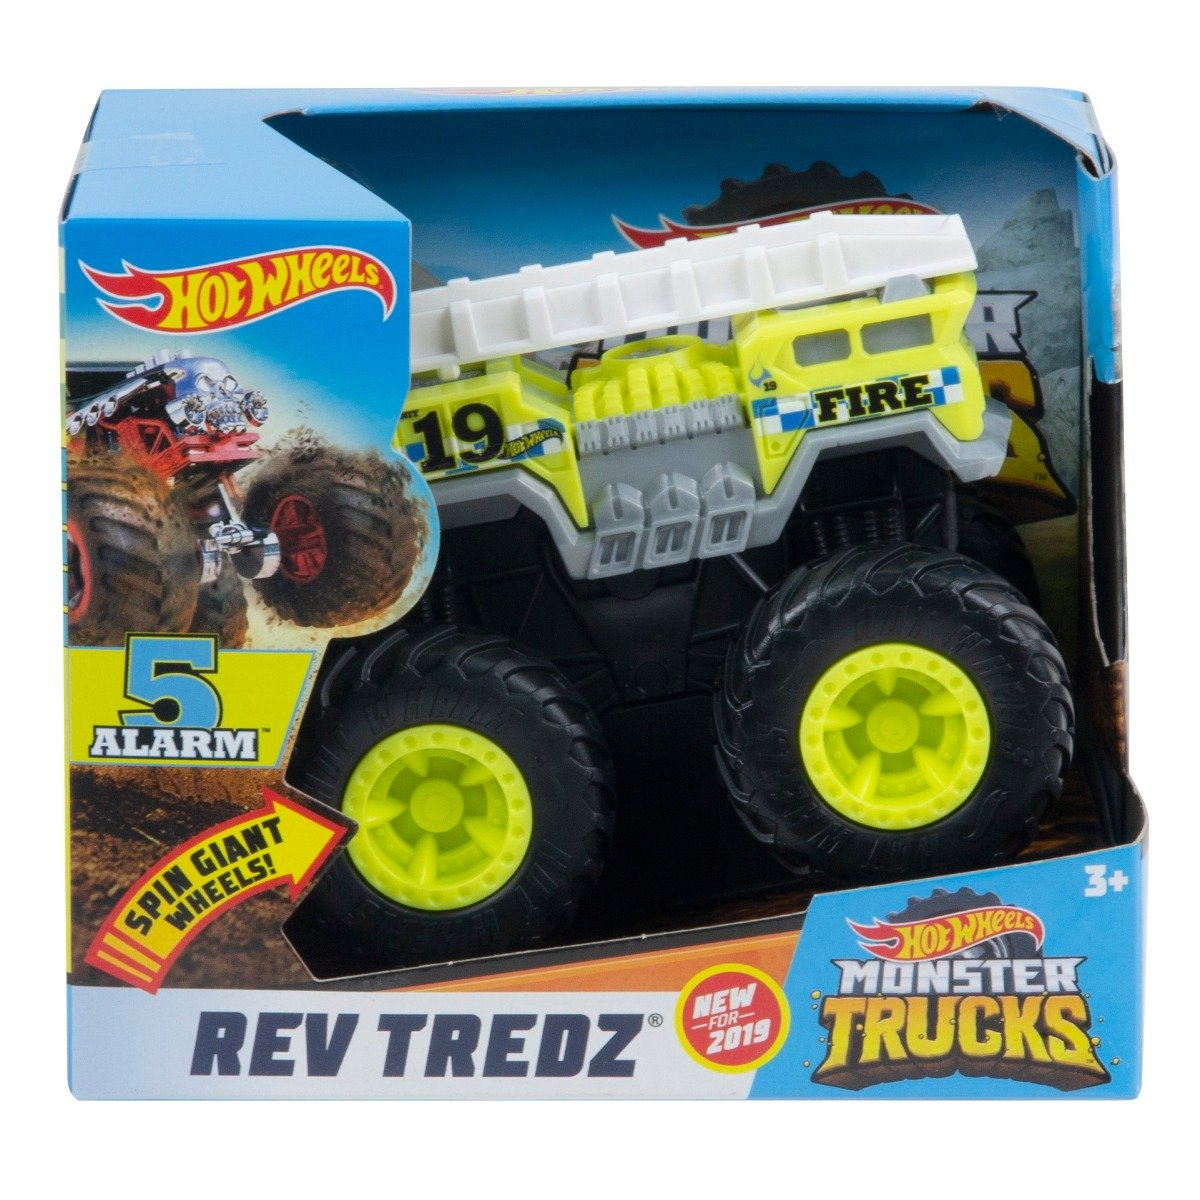 Masinuta Hot Wheels Rev Tredz, 5 Alarm GBV11